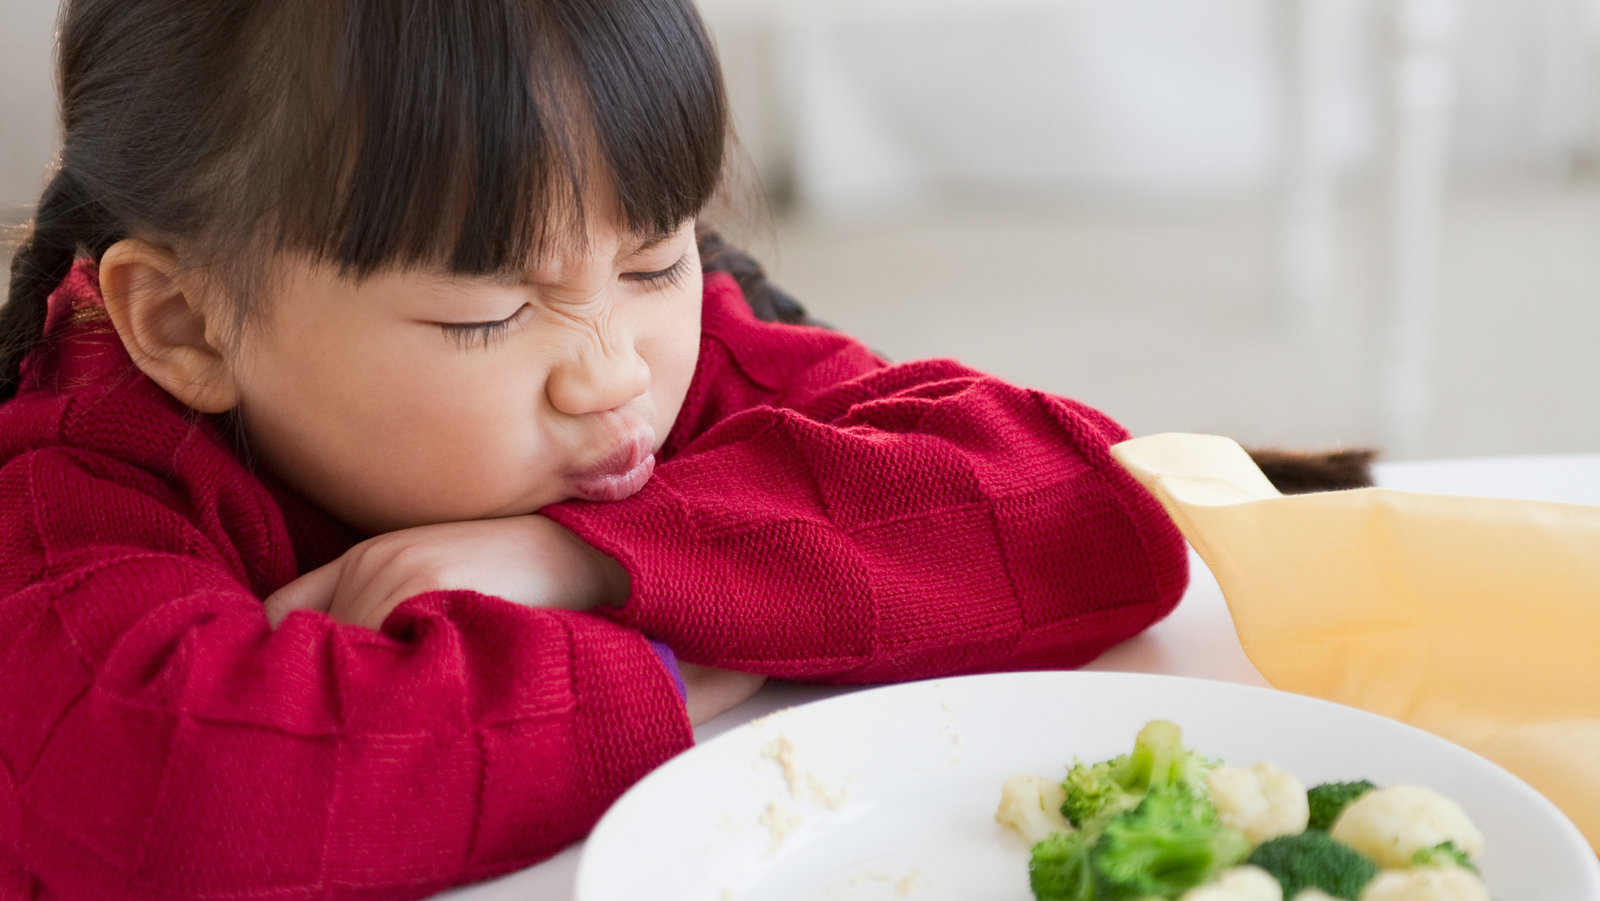 a child refusing to eat vegetables